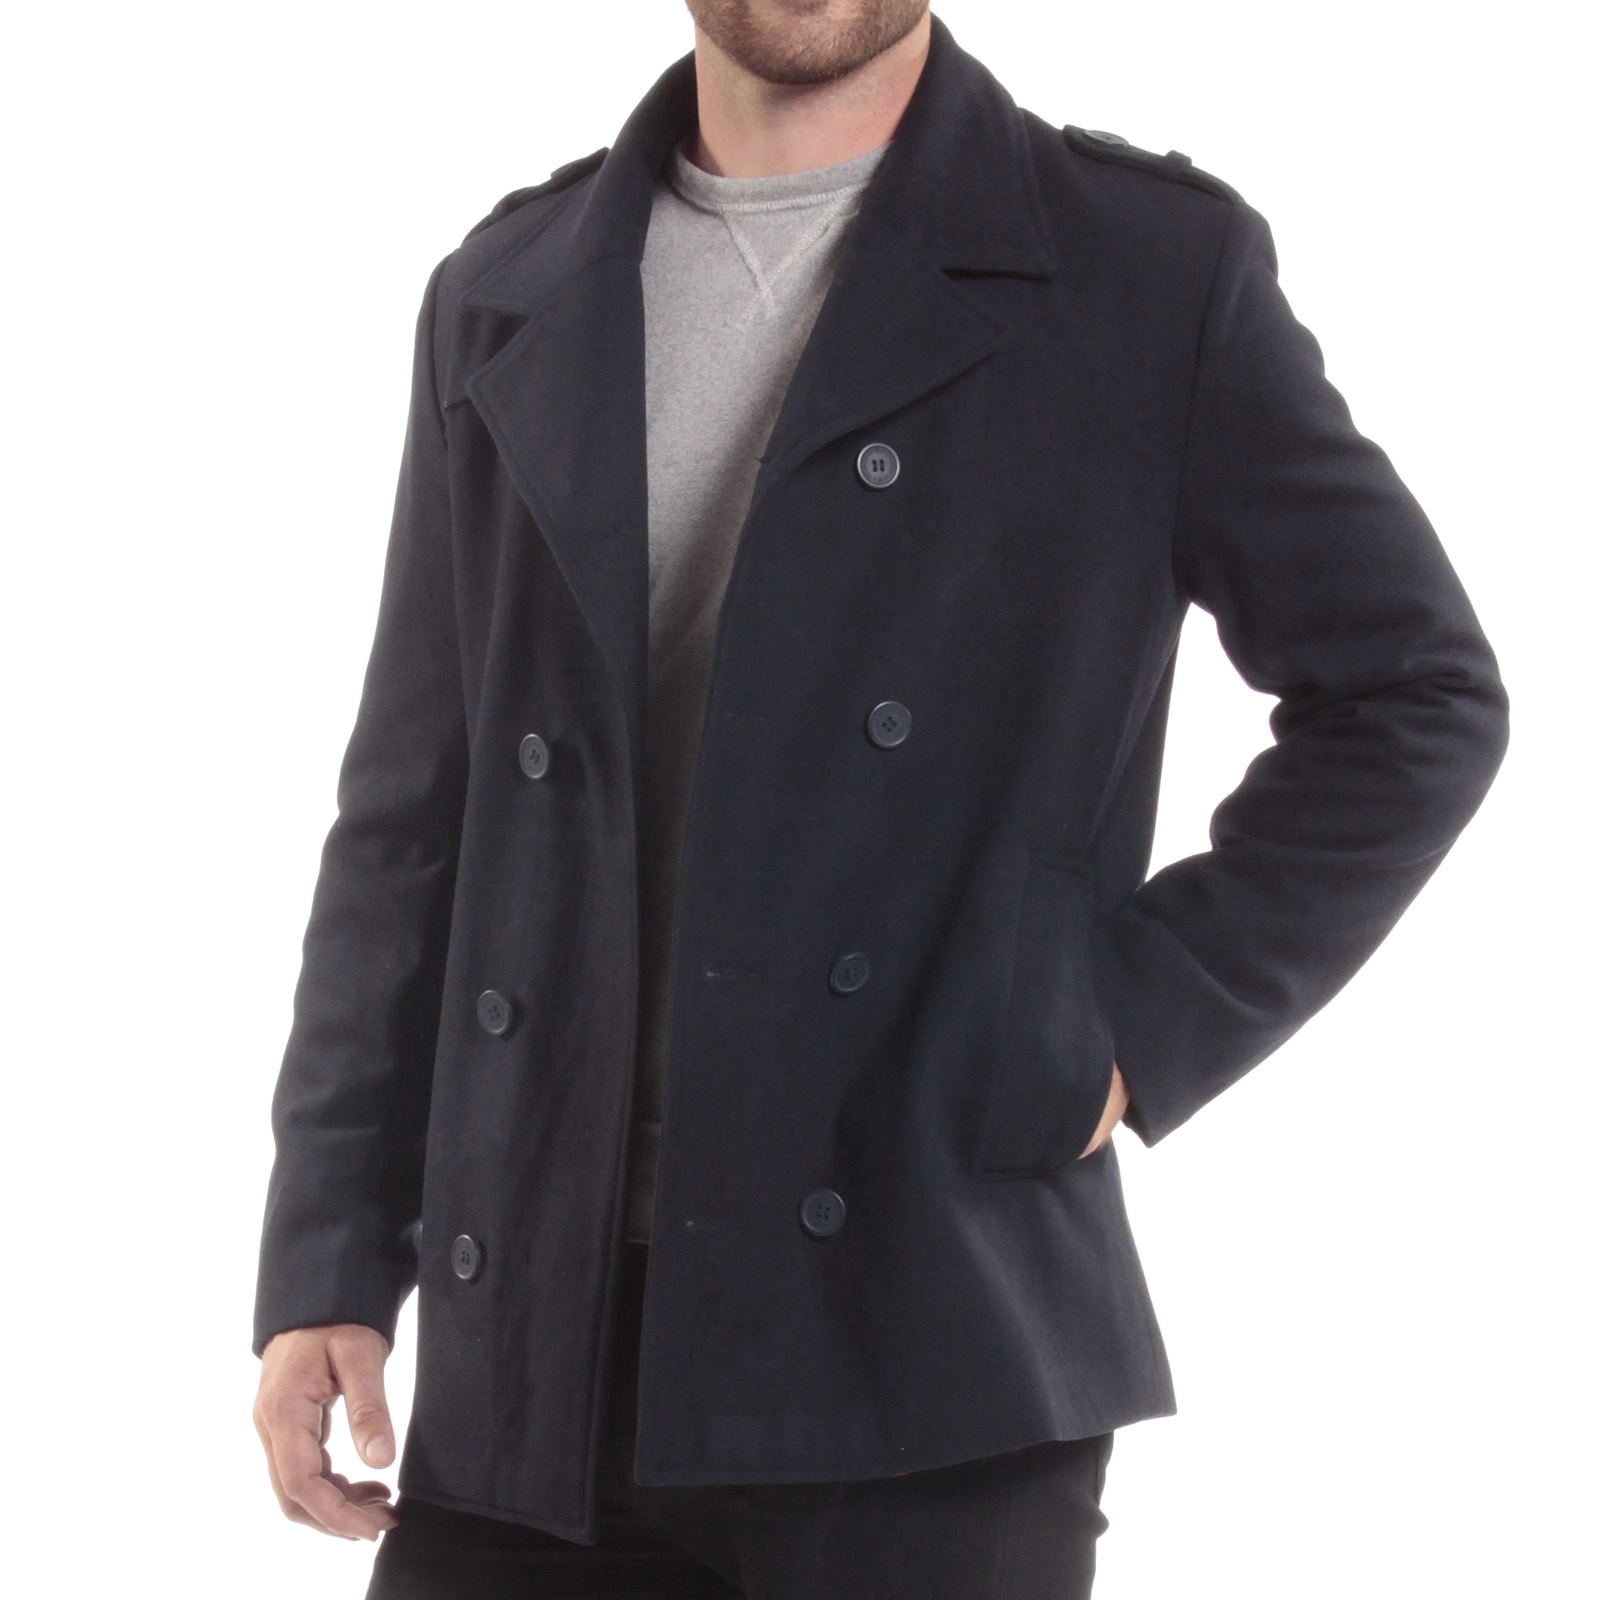 In addition to the selection of classic wool pea coats, you'll discover several options that feature cozy soft fleece and sweater knit construction for relaxed vibe. Old Navy offers an exceptional selection of these affordable layers that are shorter in length but tall on cool flair.